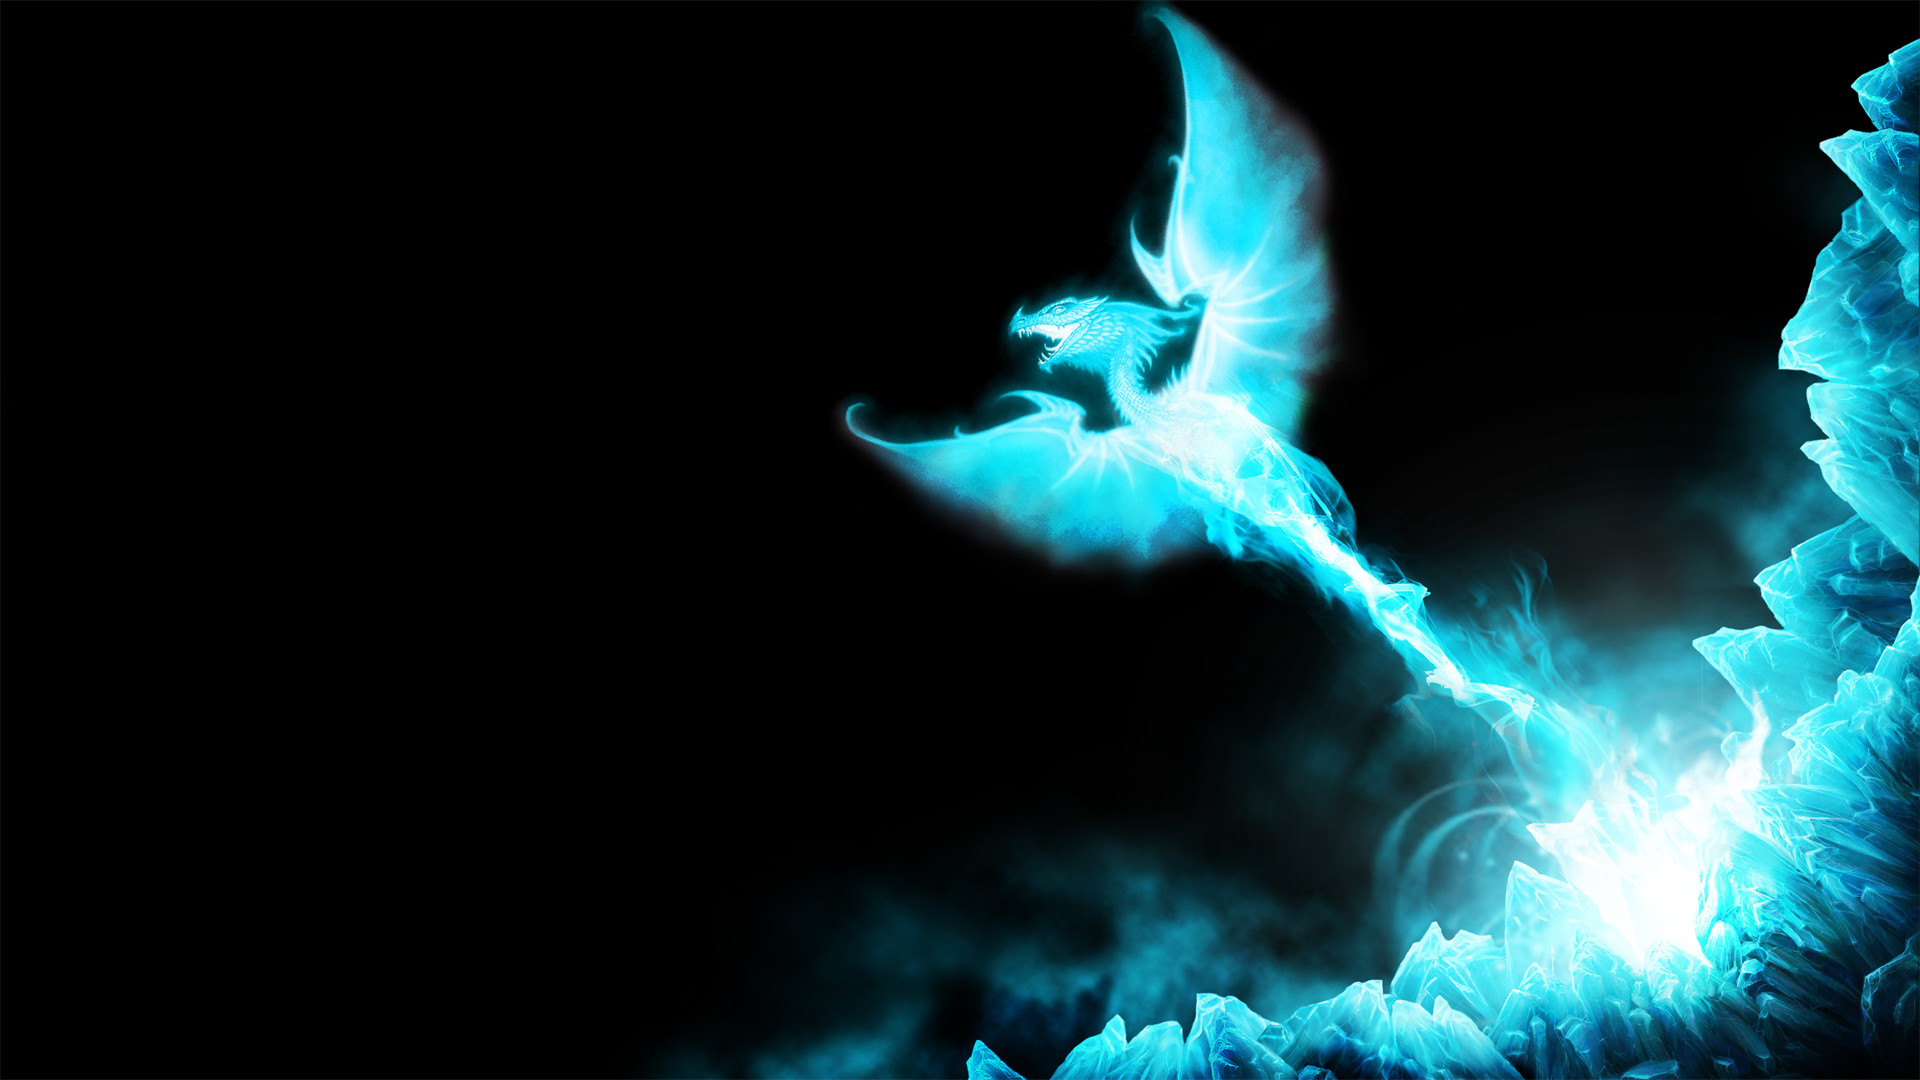 Electric Dragon Wallpapers 67 Images